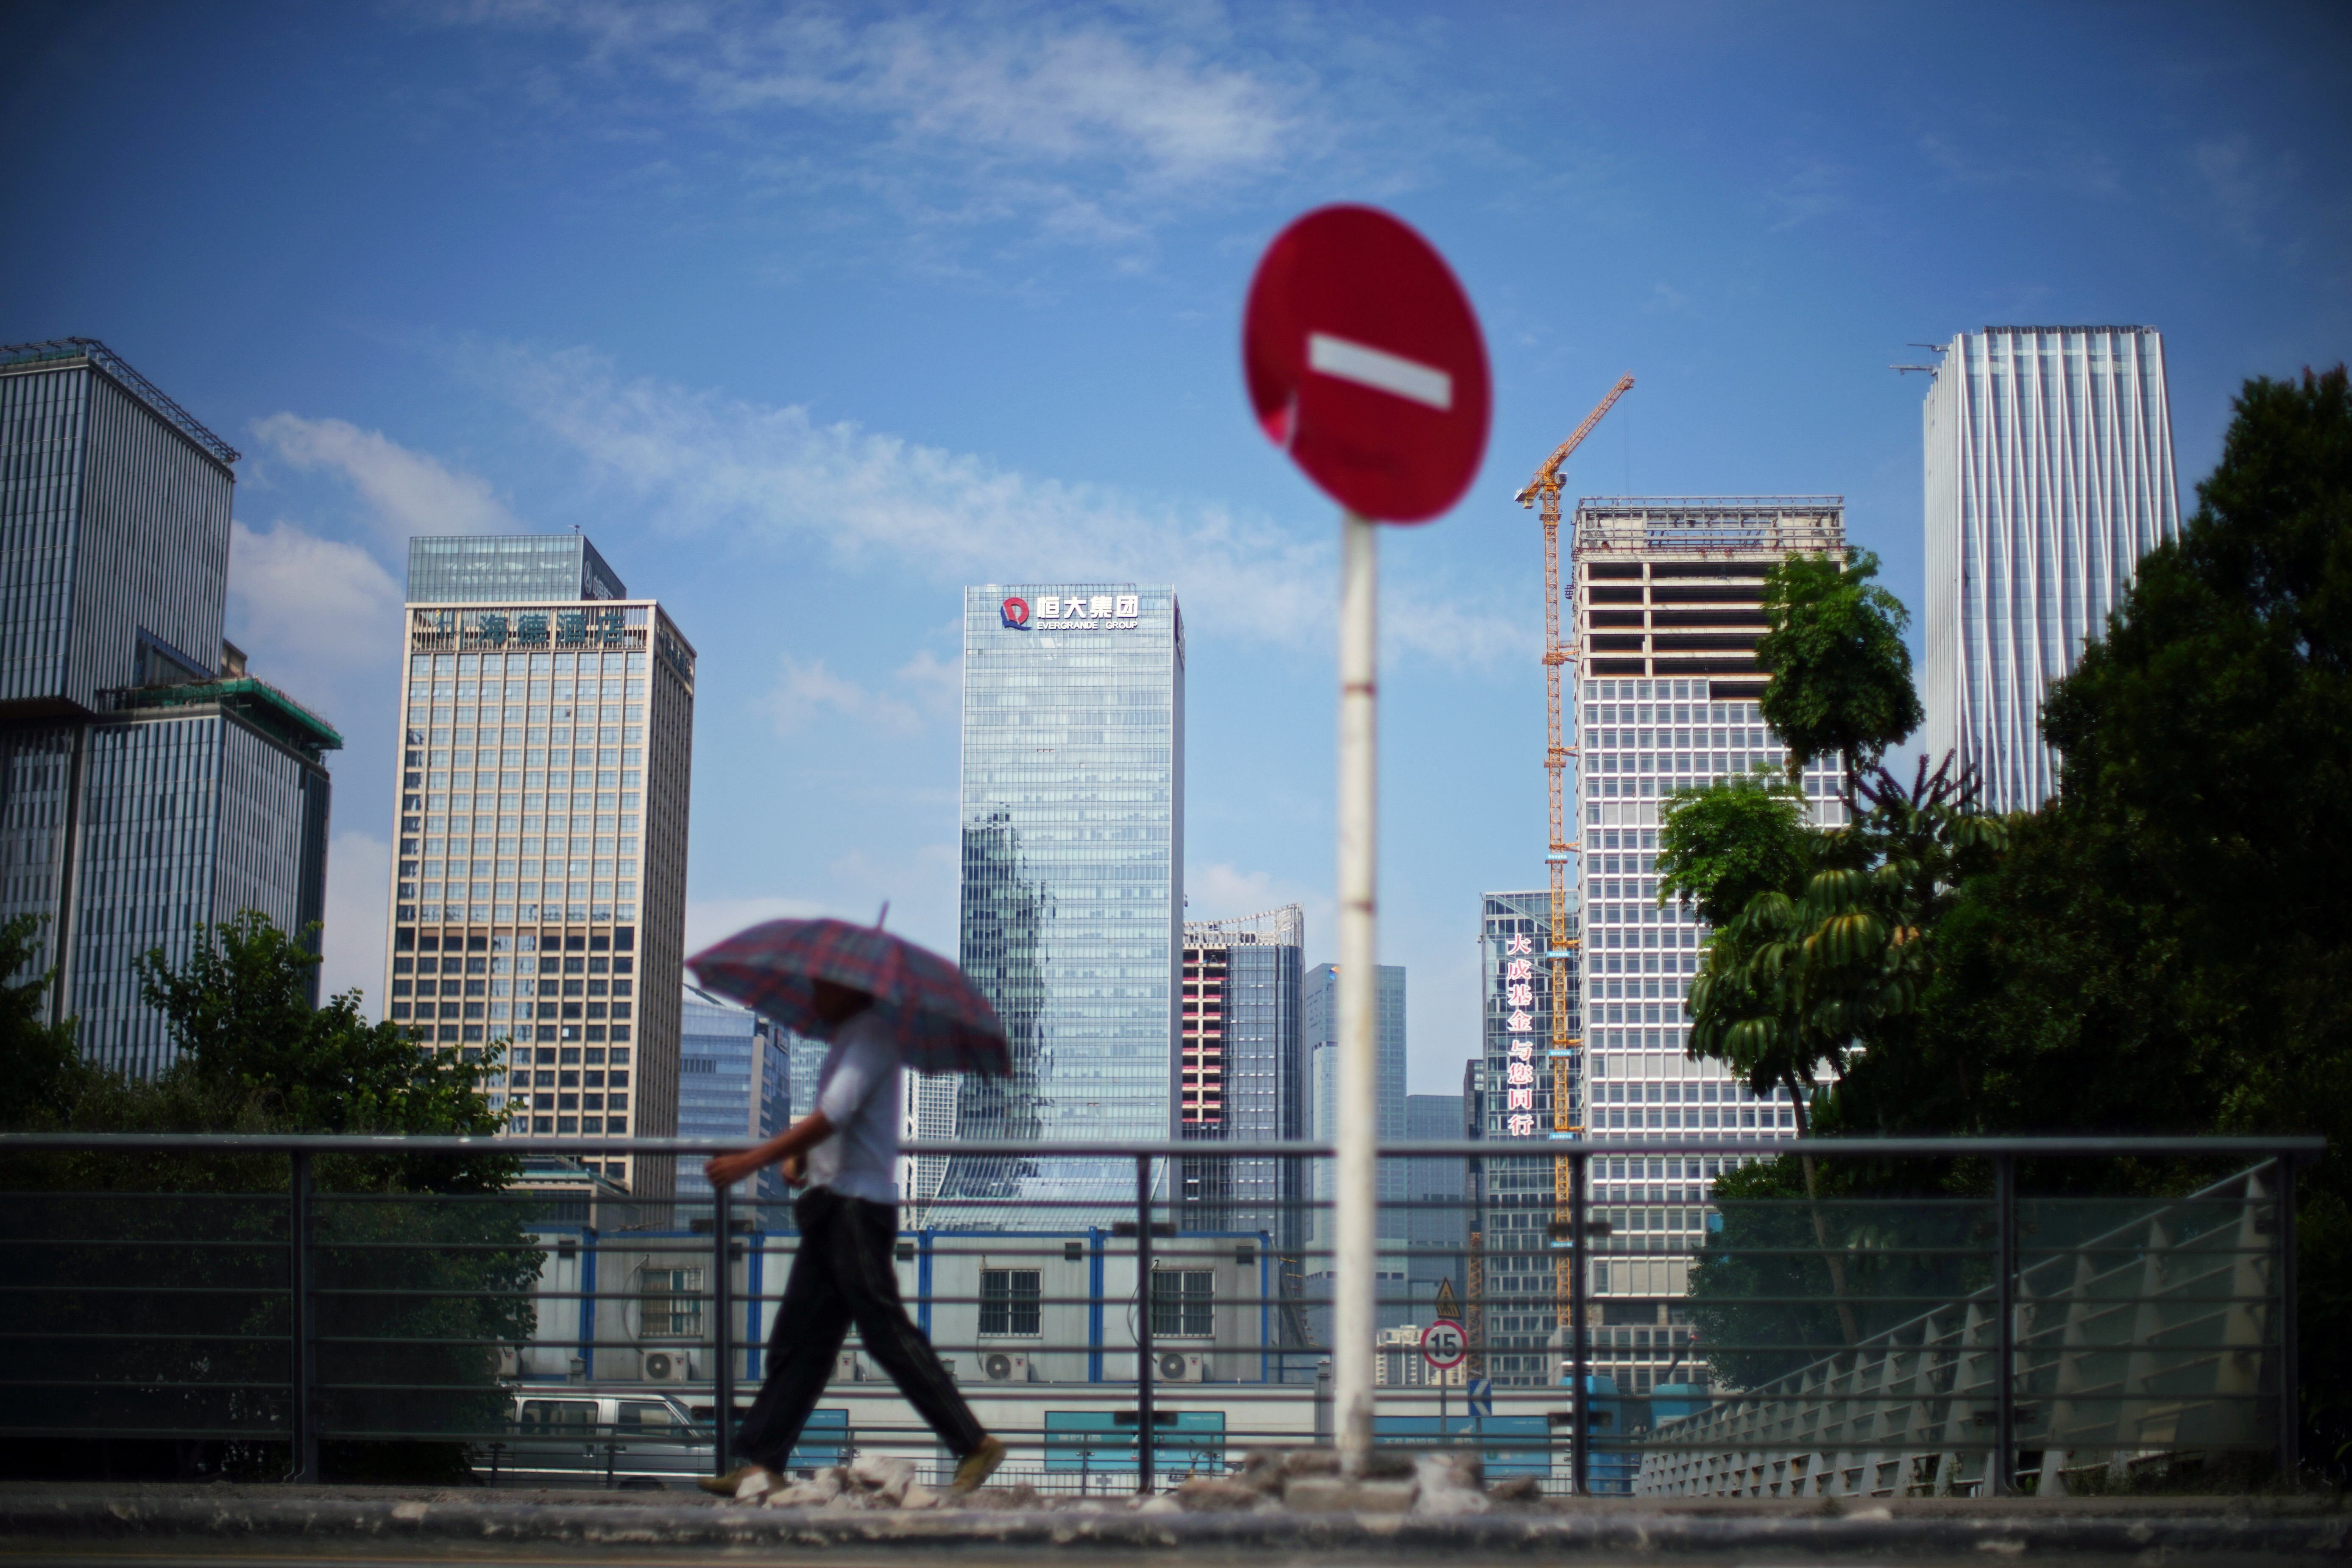 A man walks past a No Entry traffic sign near the headquarters of China Evergrande Group in Shenzhen, Guangdong province, China September 26, 2021. REUTERS/Aly Song/Files